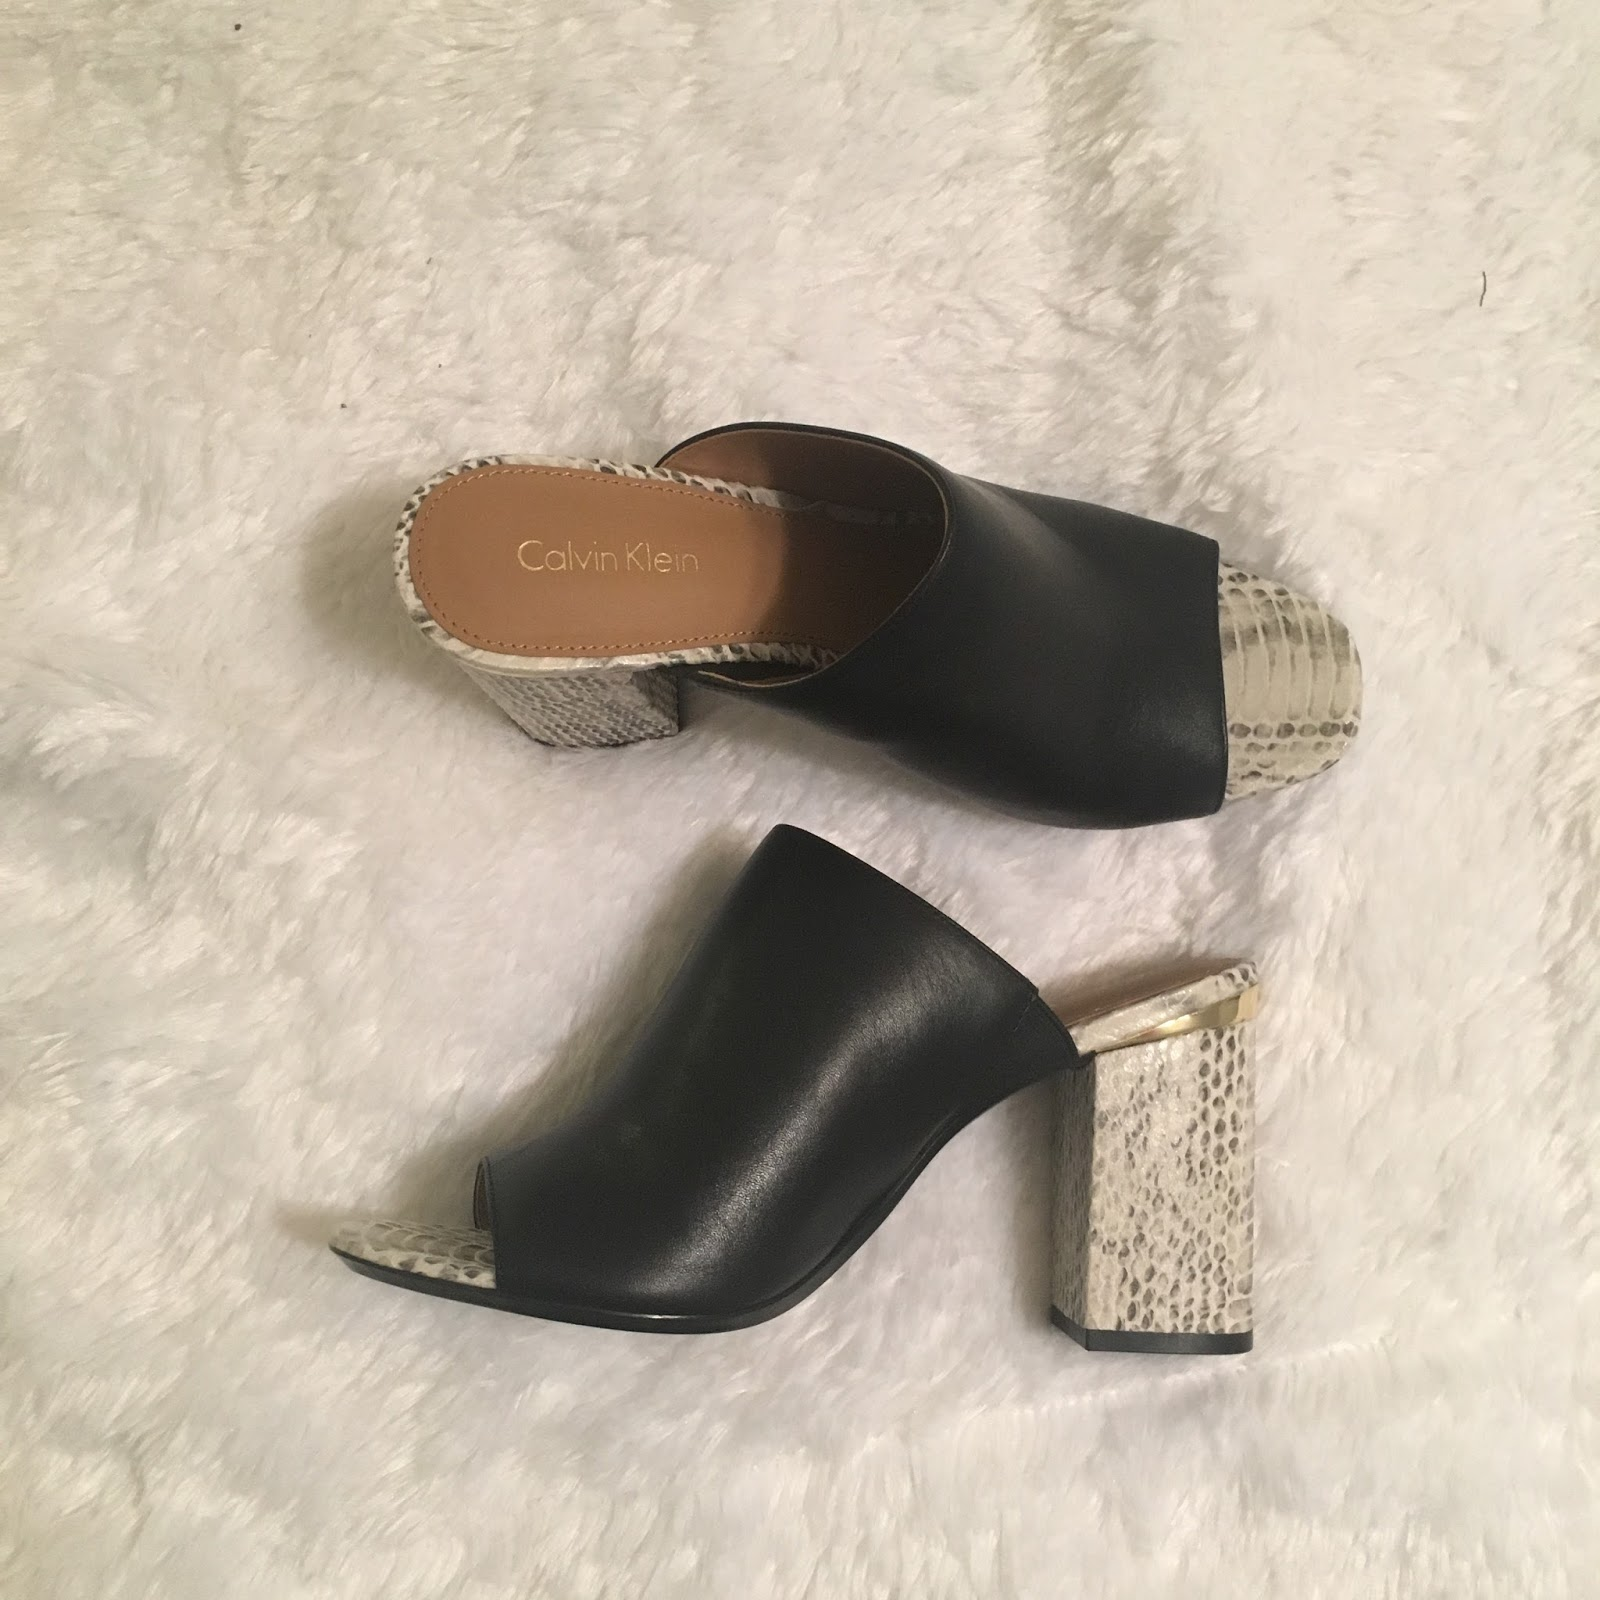 Black and Snakeskin mule shoes